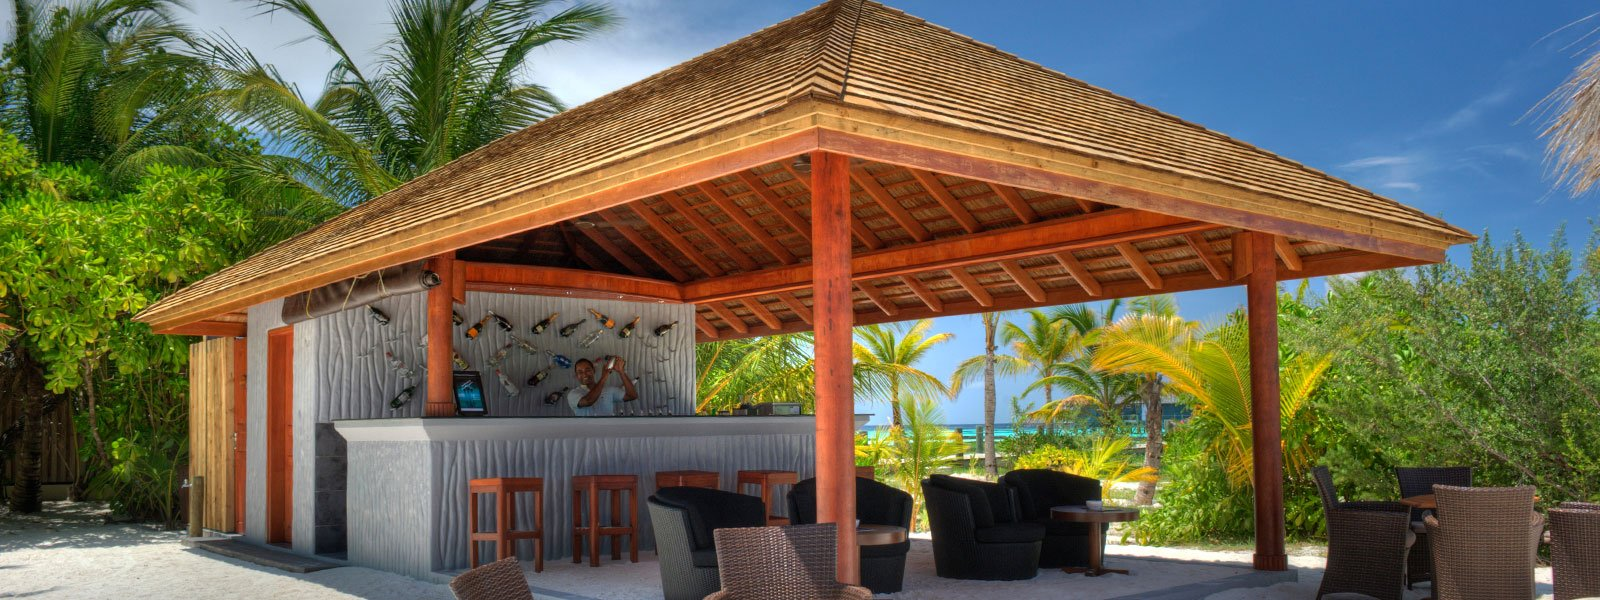 komandoo-restaurants-beach-bar_1600x600